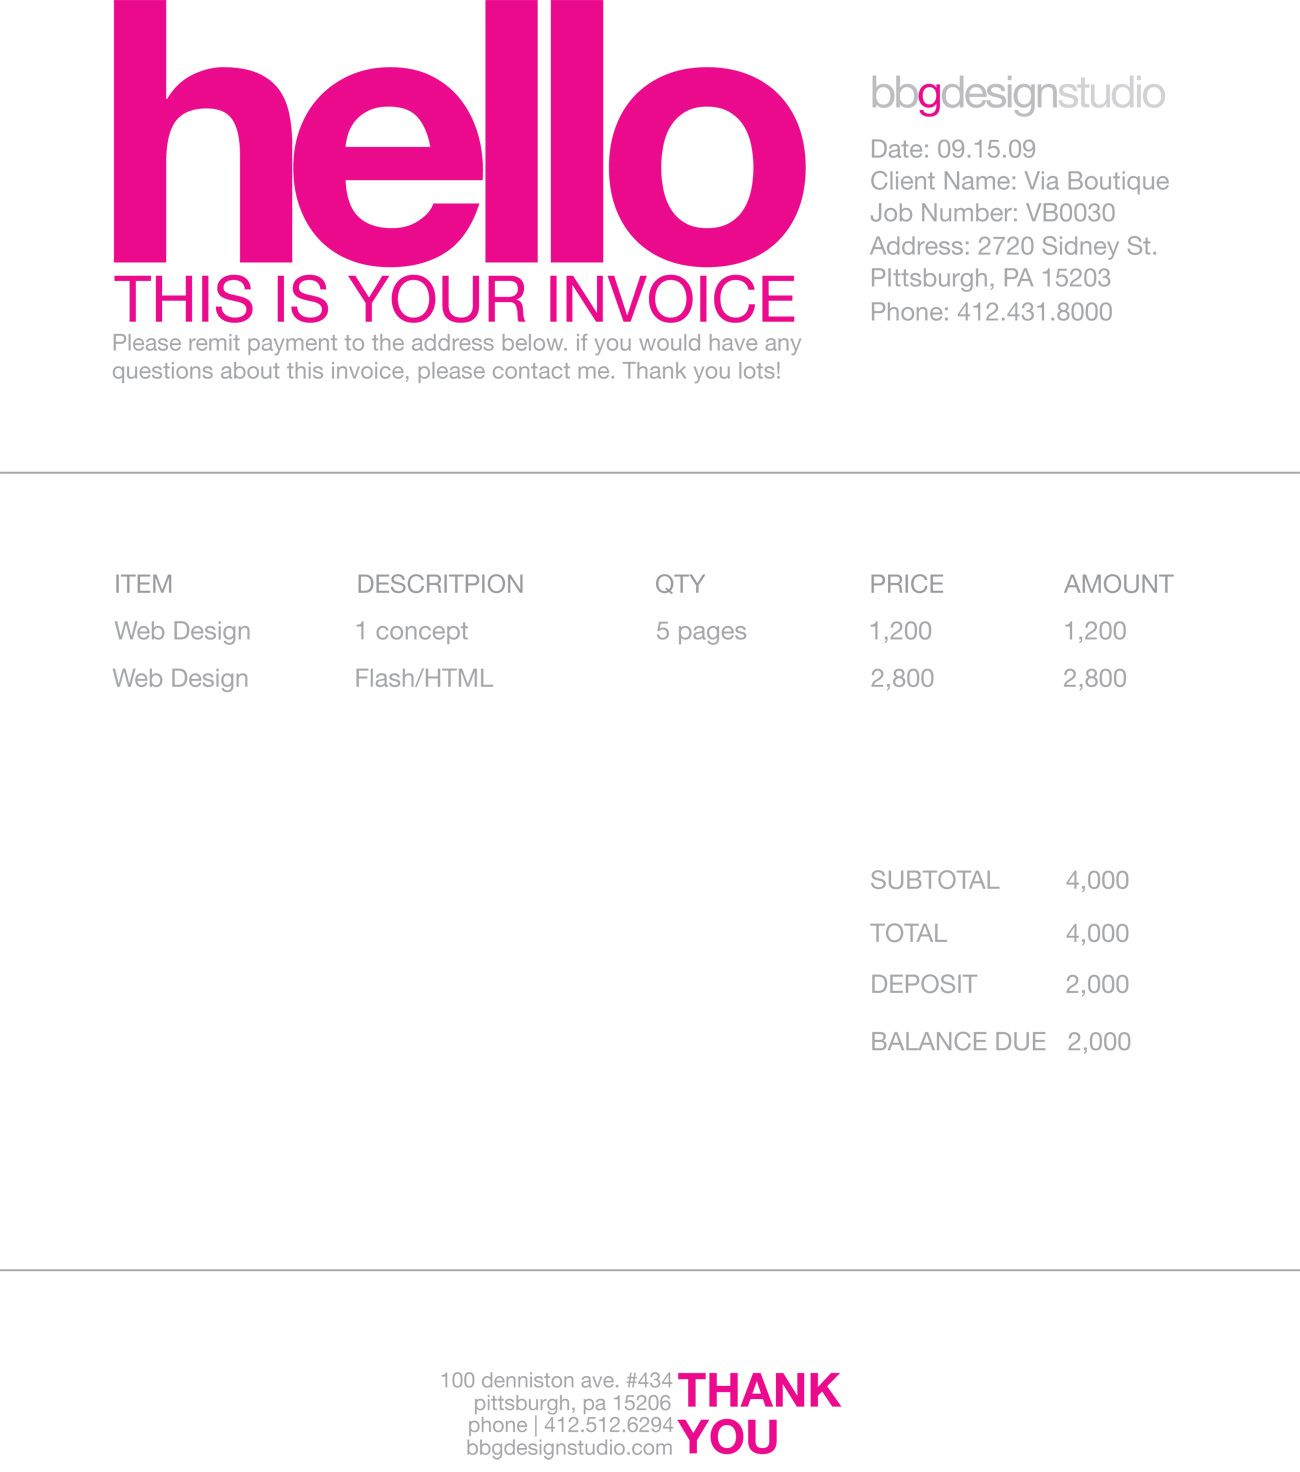 Coachoutletonlineplusus  Marvellous  Images About Invoice Design On Pinterest With Lovable Free Receipt Besides I  Receipt Notice Furthermore Check Receipt Template With Archaic Sample Donation Receipt Also How Long Should You Keep Receipts In Addition Receipt Organizer Software And Kohls Return Without Receipt As Well As Fake Hotel Receipt Additionally Cash Receipts Template From Pinterestcom With Coachoutletonlineplusus  Lovable  Images About Invoice Design On Pinterest With Archaic Free Receipt Besides I  Receipt Notice Furthermore Check Receipt Template And Marvellous Sample Donation Receipt Also How Long Should You Keep Receipts In Addition Receipt Organizer Software From Pinterestcom